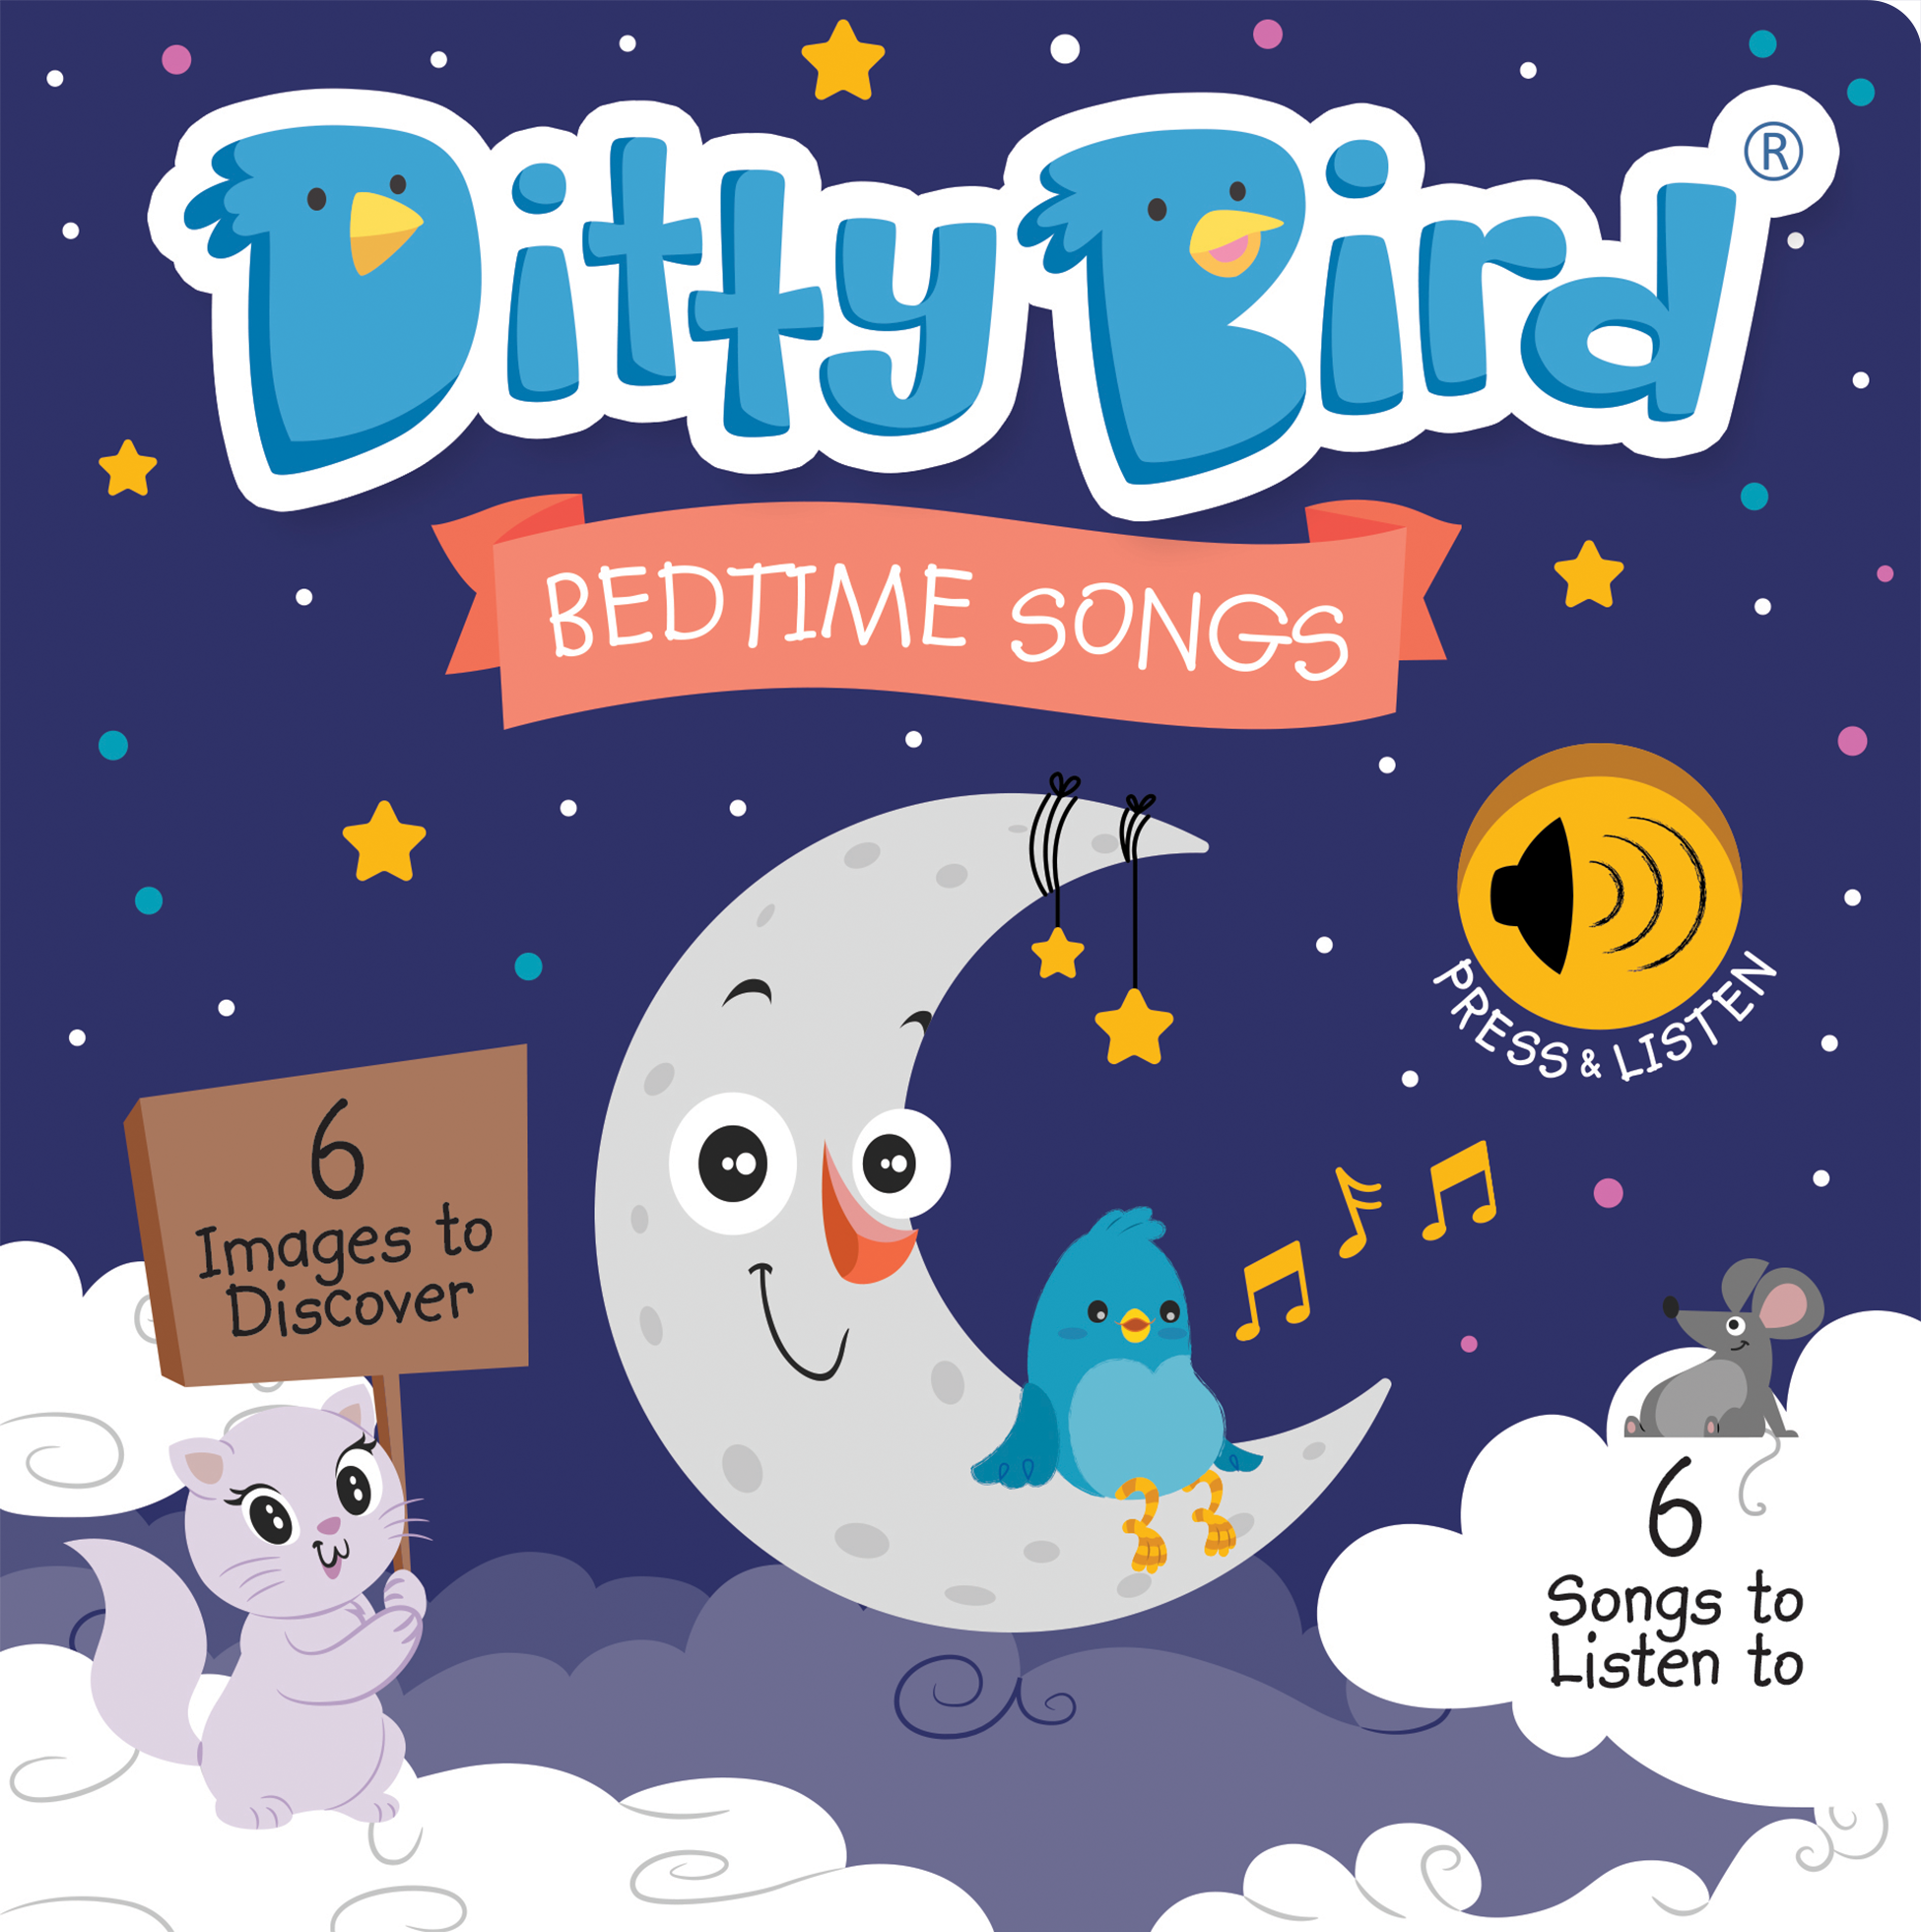 Ditty Bird - Bedtime Songs  (Wholesale only)